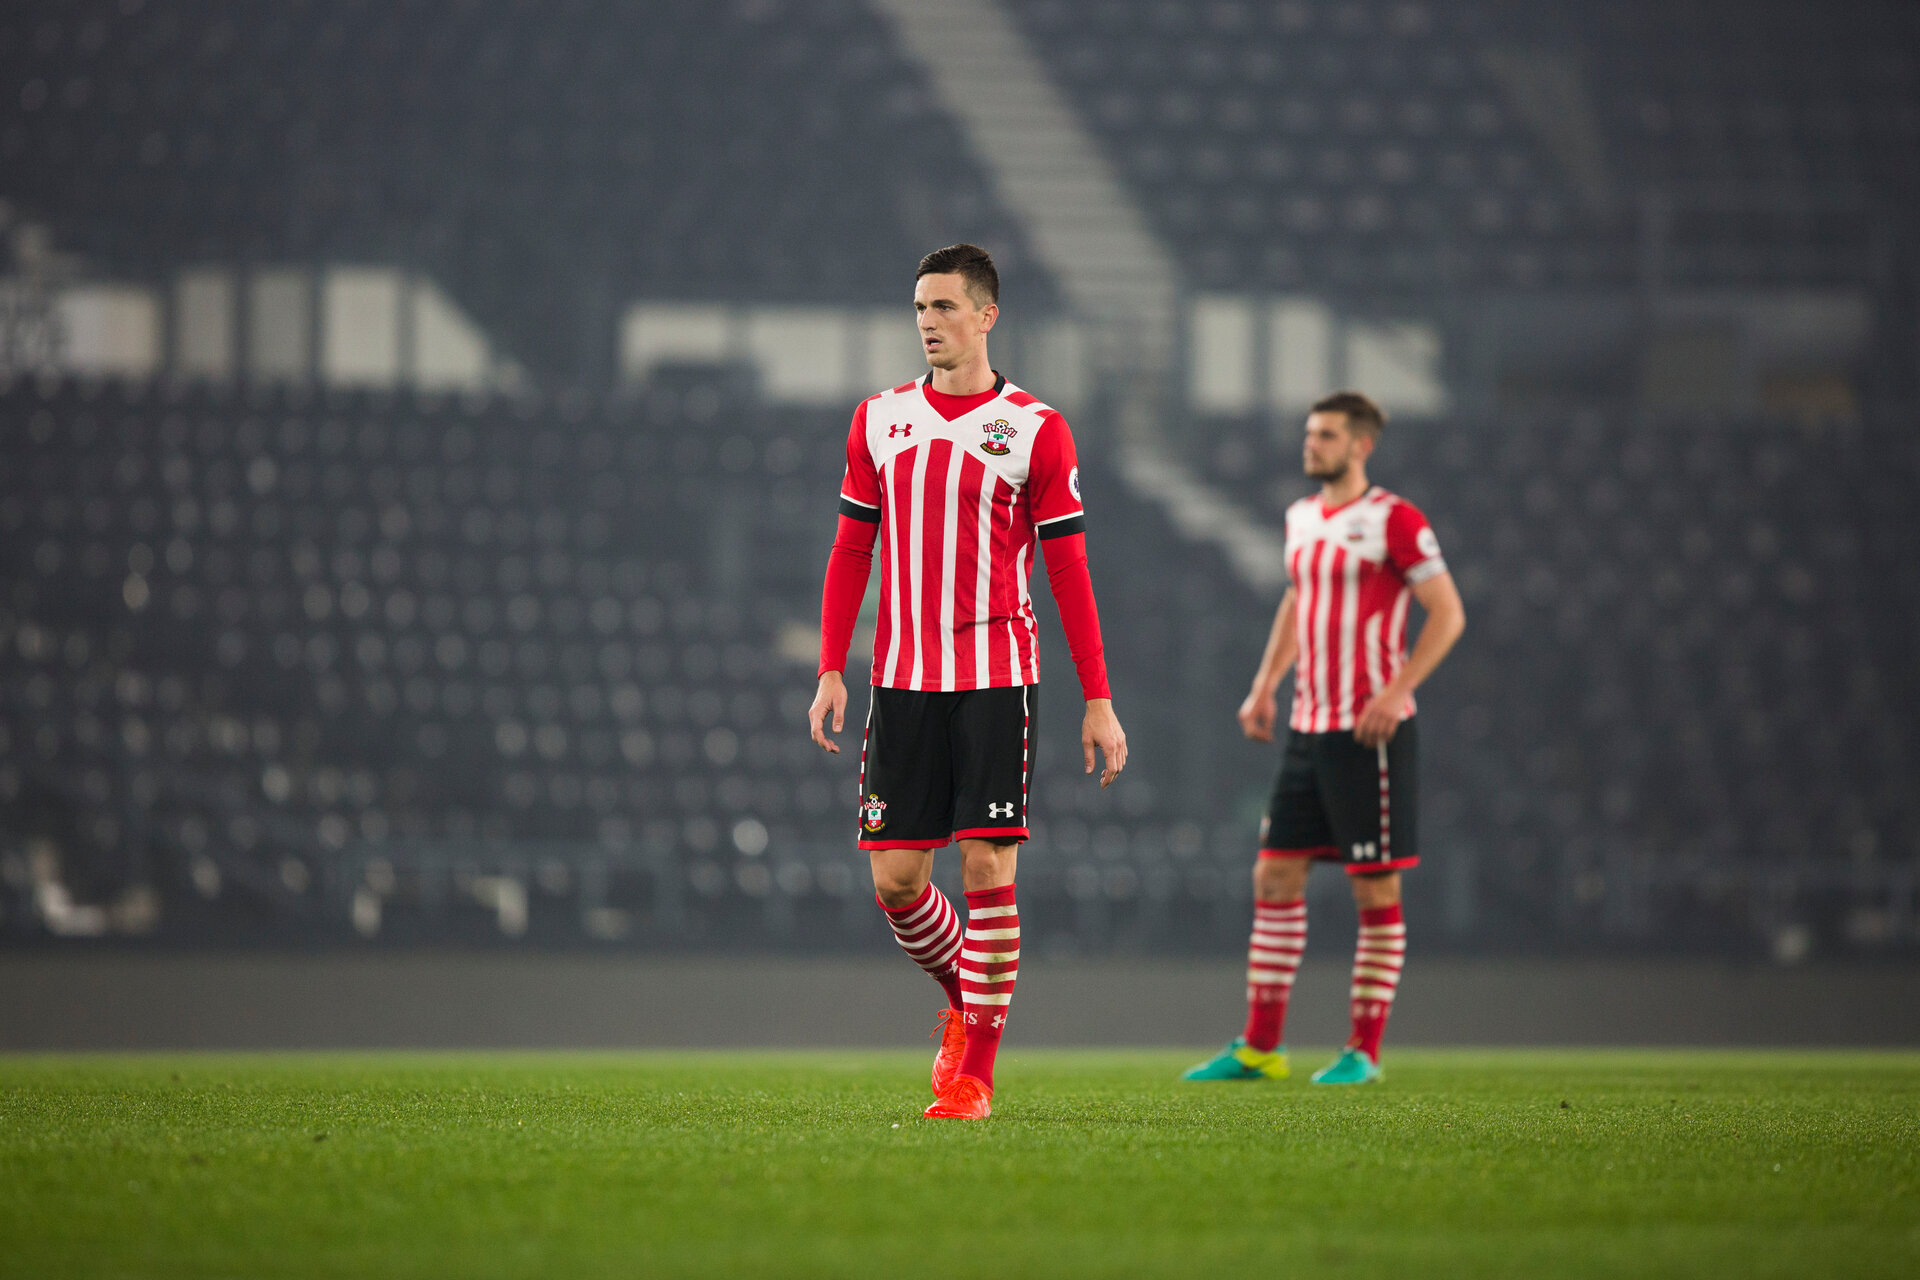 florin gardos during Southampton FC U23 v Derby County U23, at the iPro arena , Derby, 31st october 2016, pic by Naomi Baker/Southampton FC